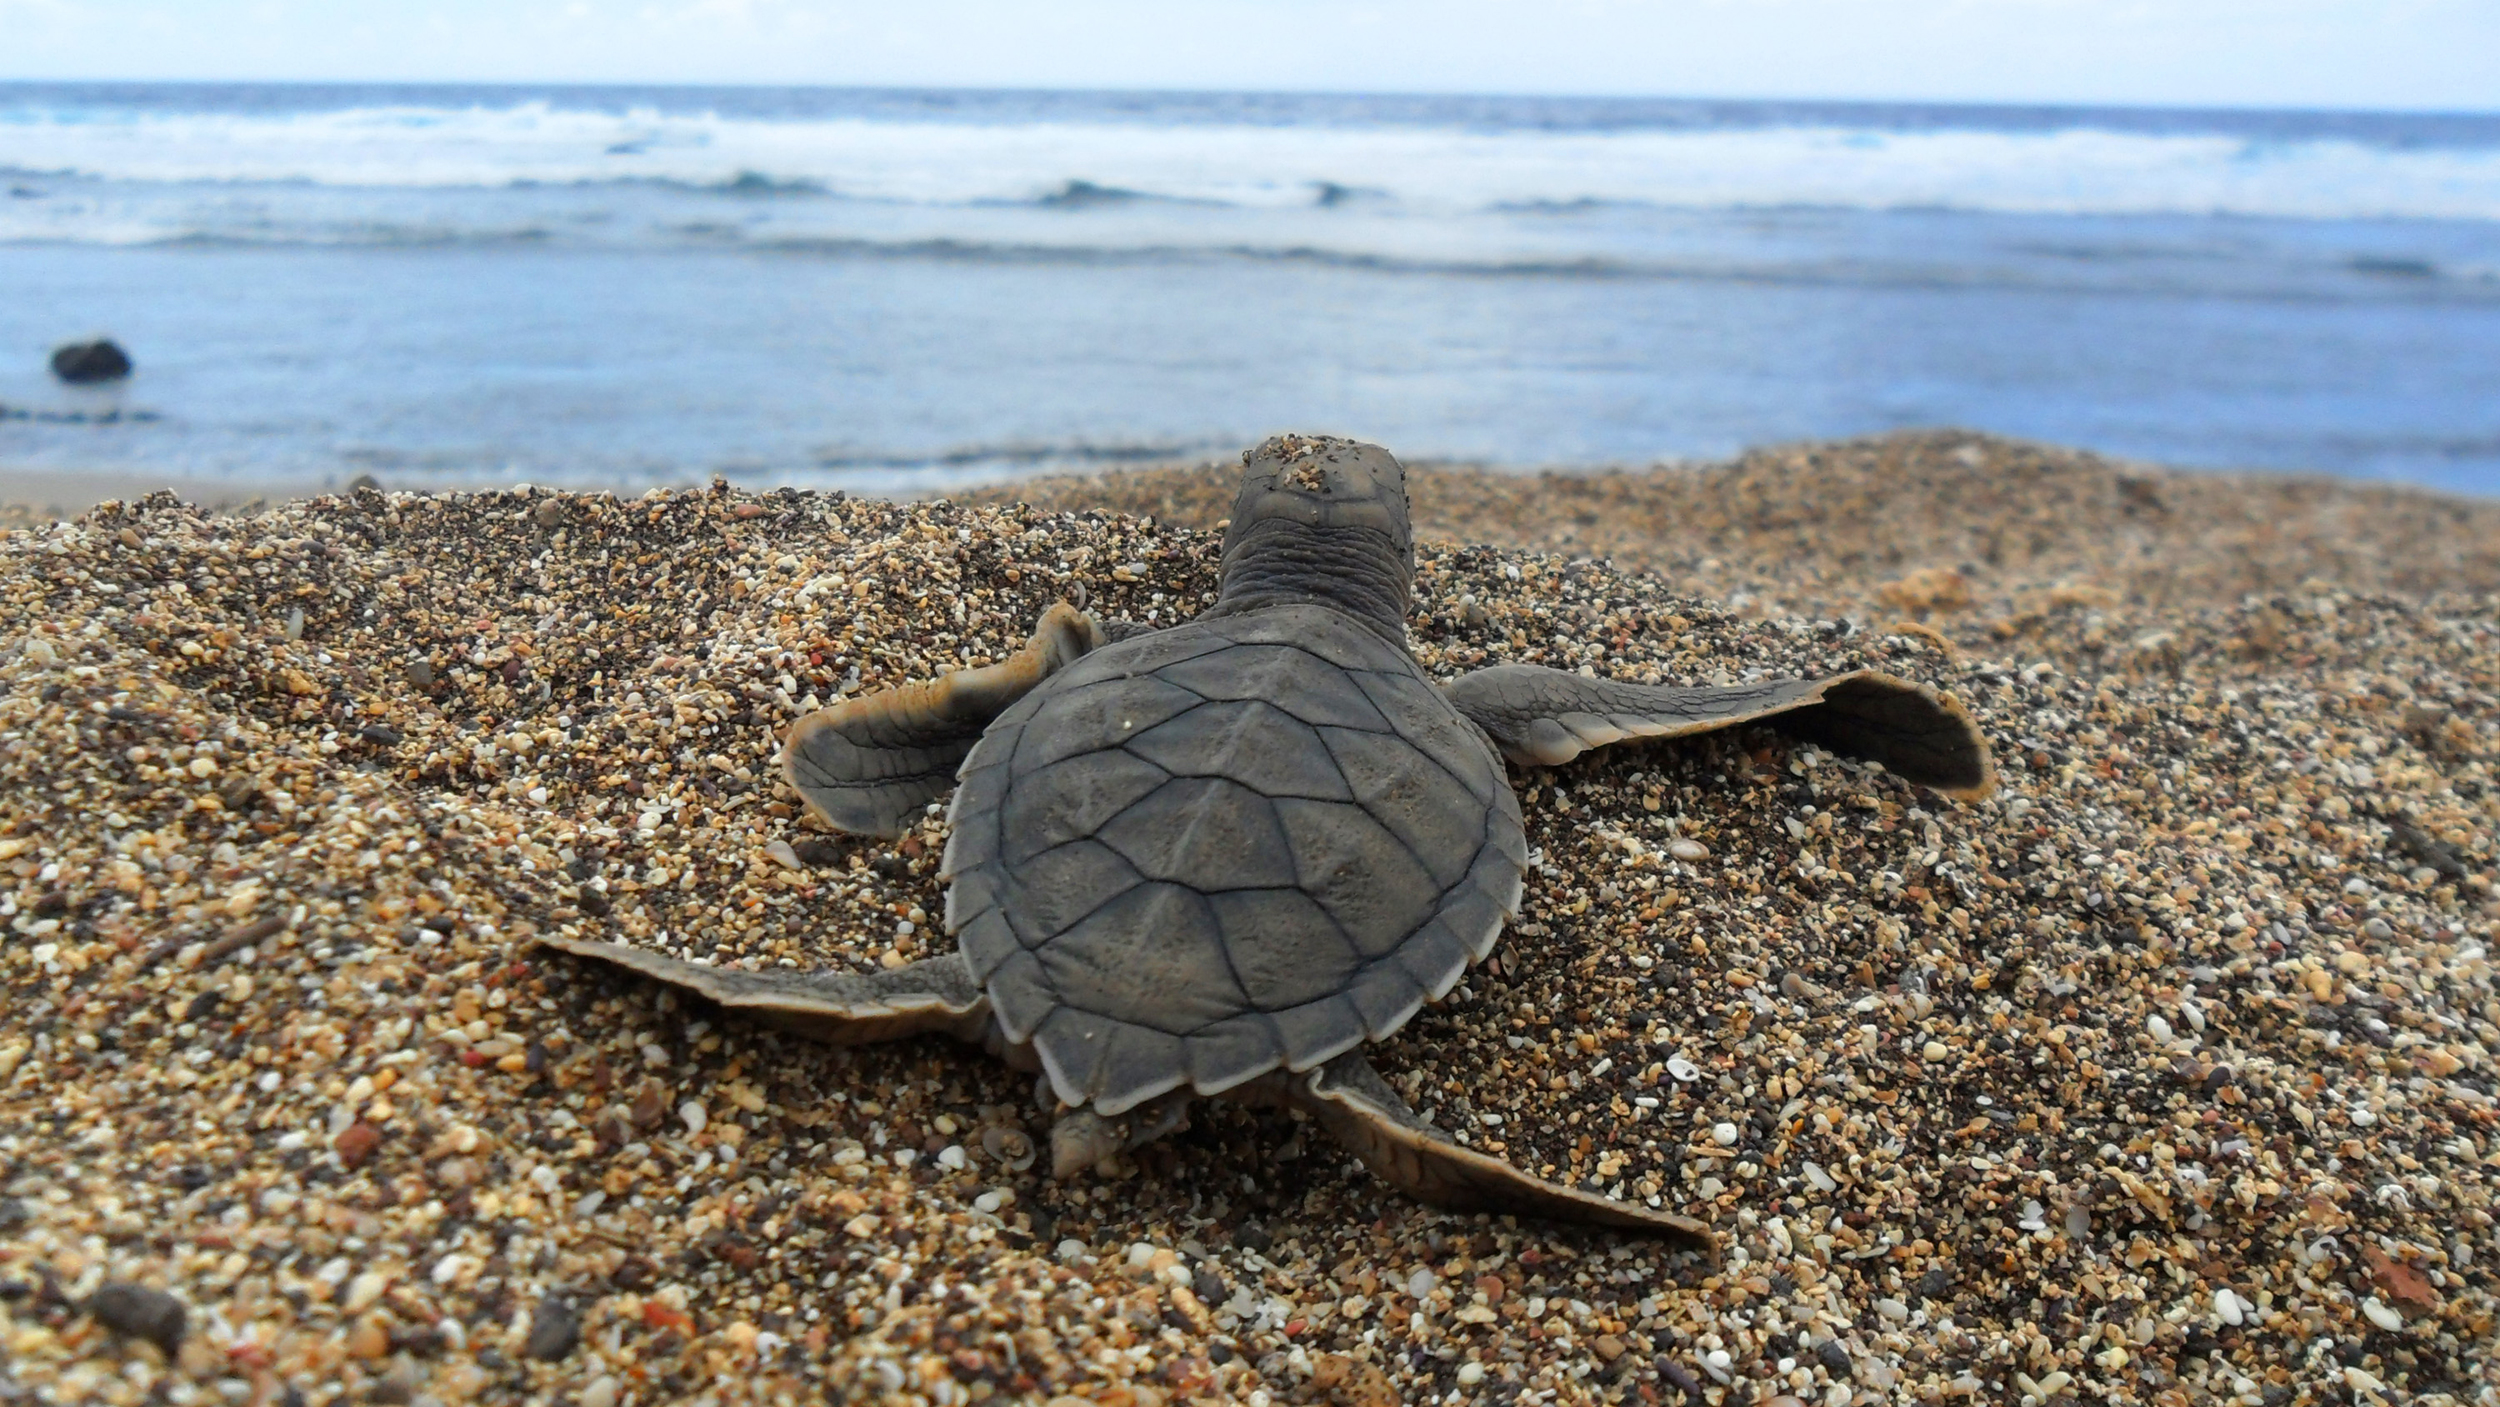 A sea turtle hatchling about to head out to sea.   Banco de Imagem/Flickr  (CC BY-SA 2.0)